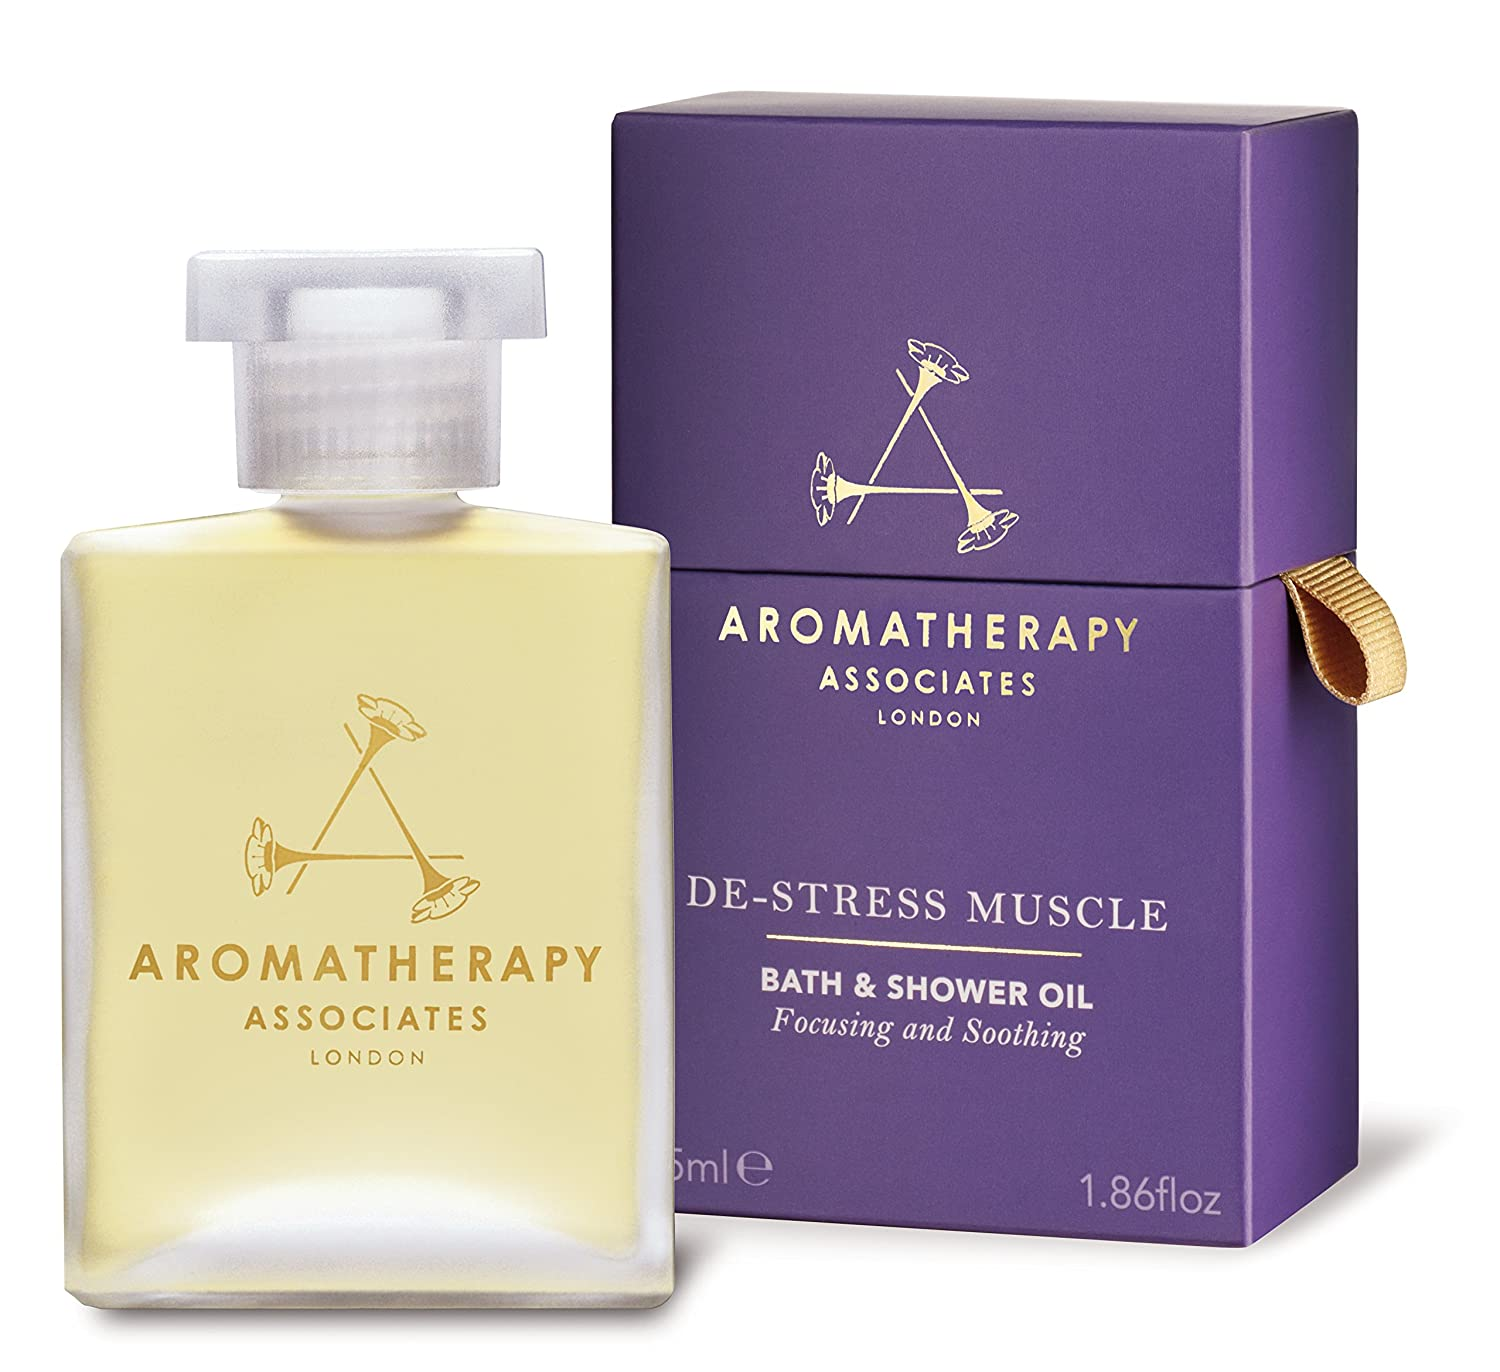 Aromatherapy Associates De-Stress Muscle Bath And Shower Oil RN511055R